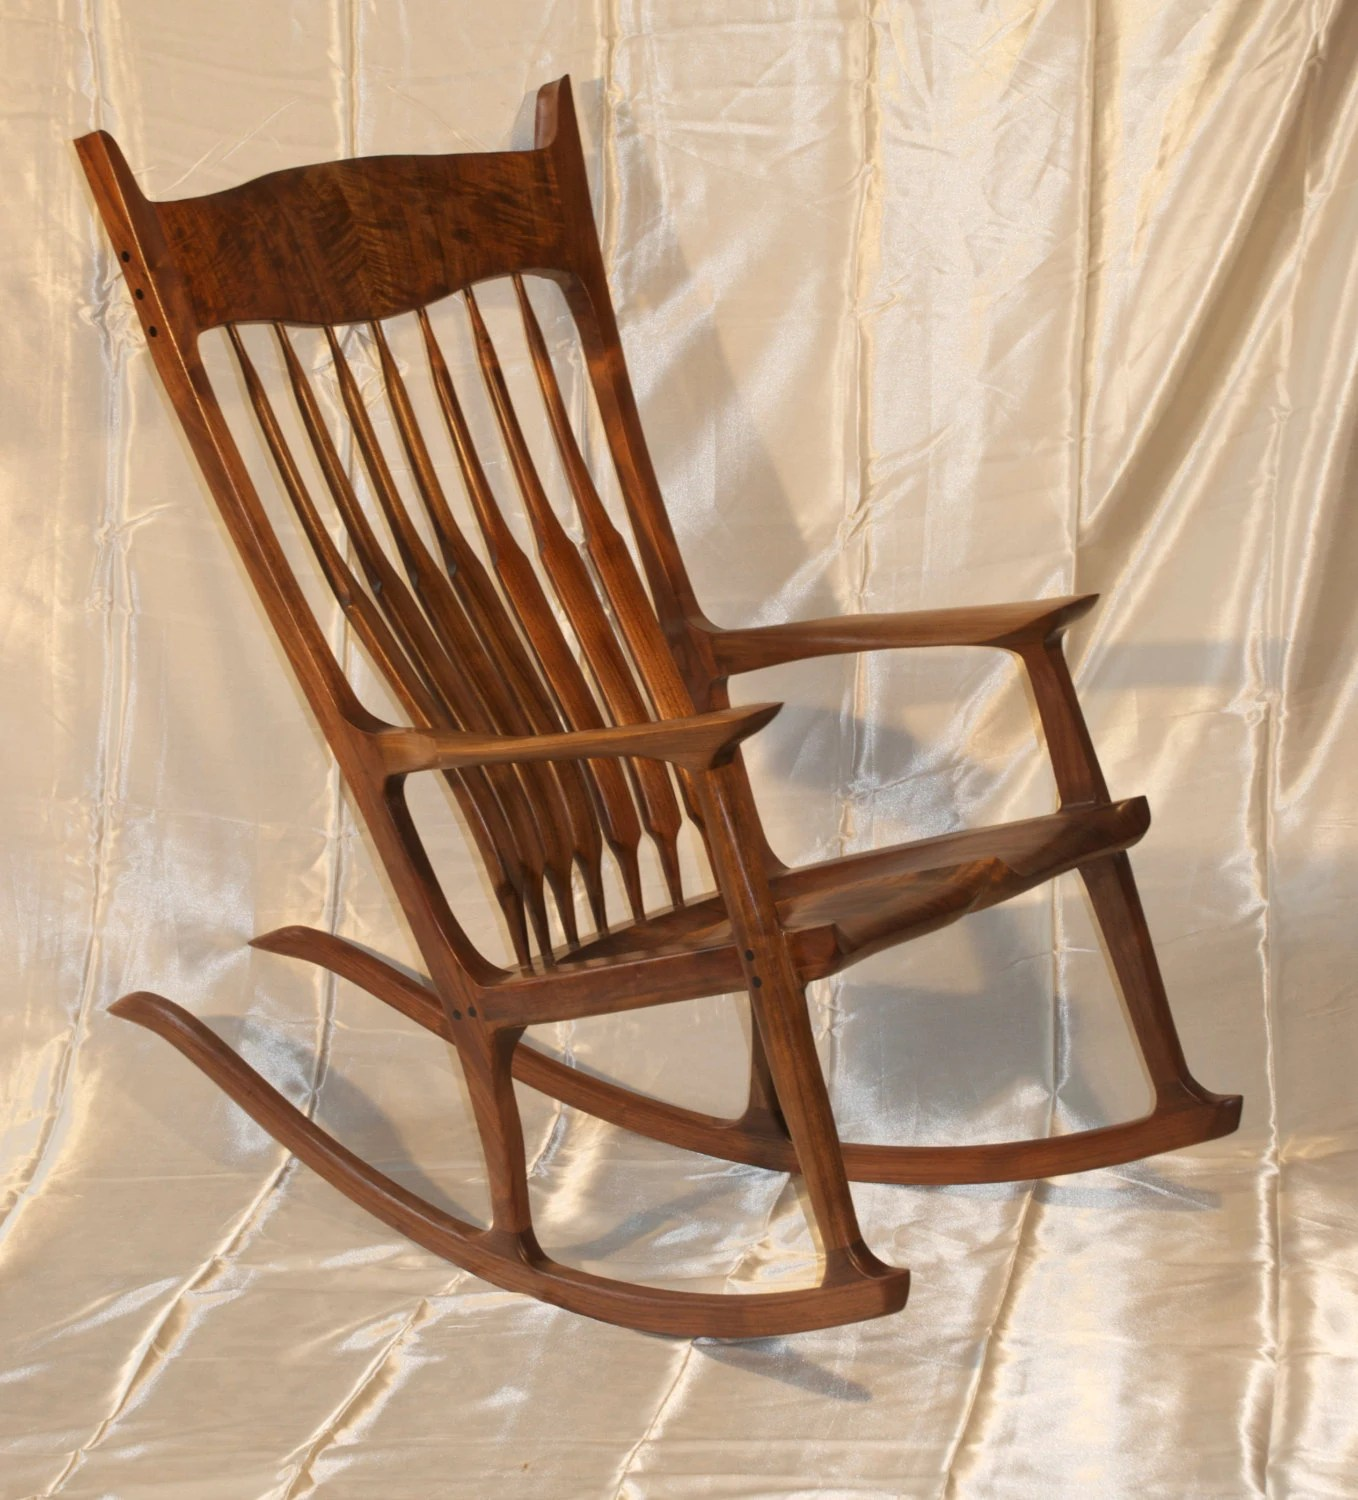 sam maloof rocking chair plans hal taylor wingback leather walmart evenflo high automatic van design logo style shaped by hand out of walnut